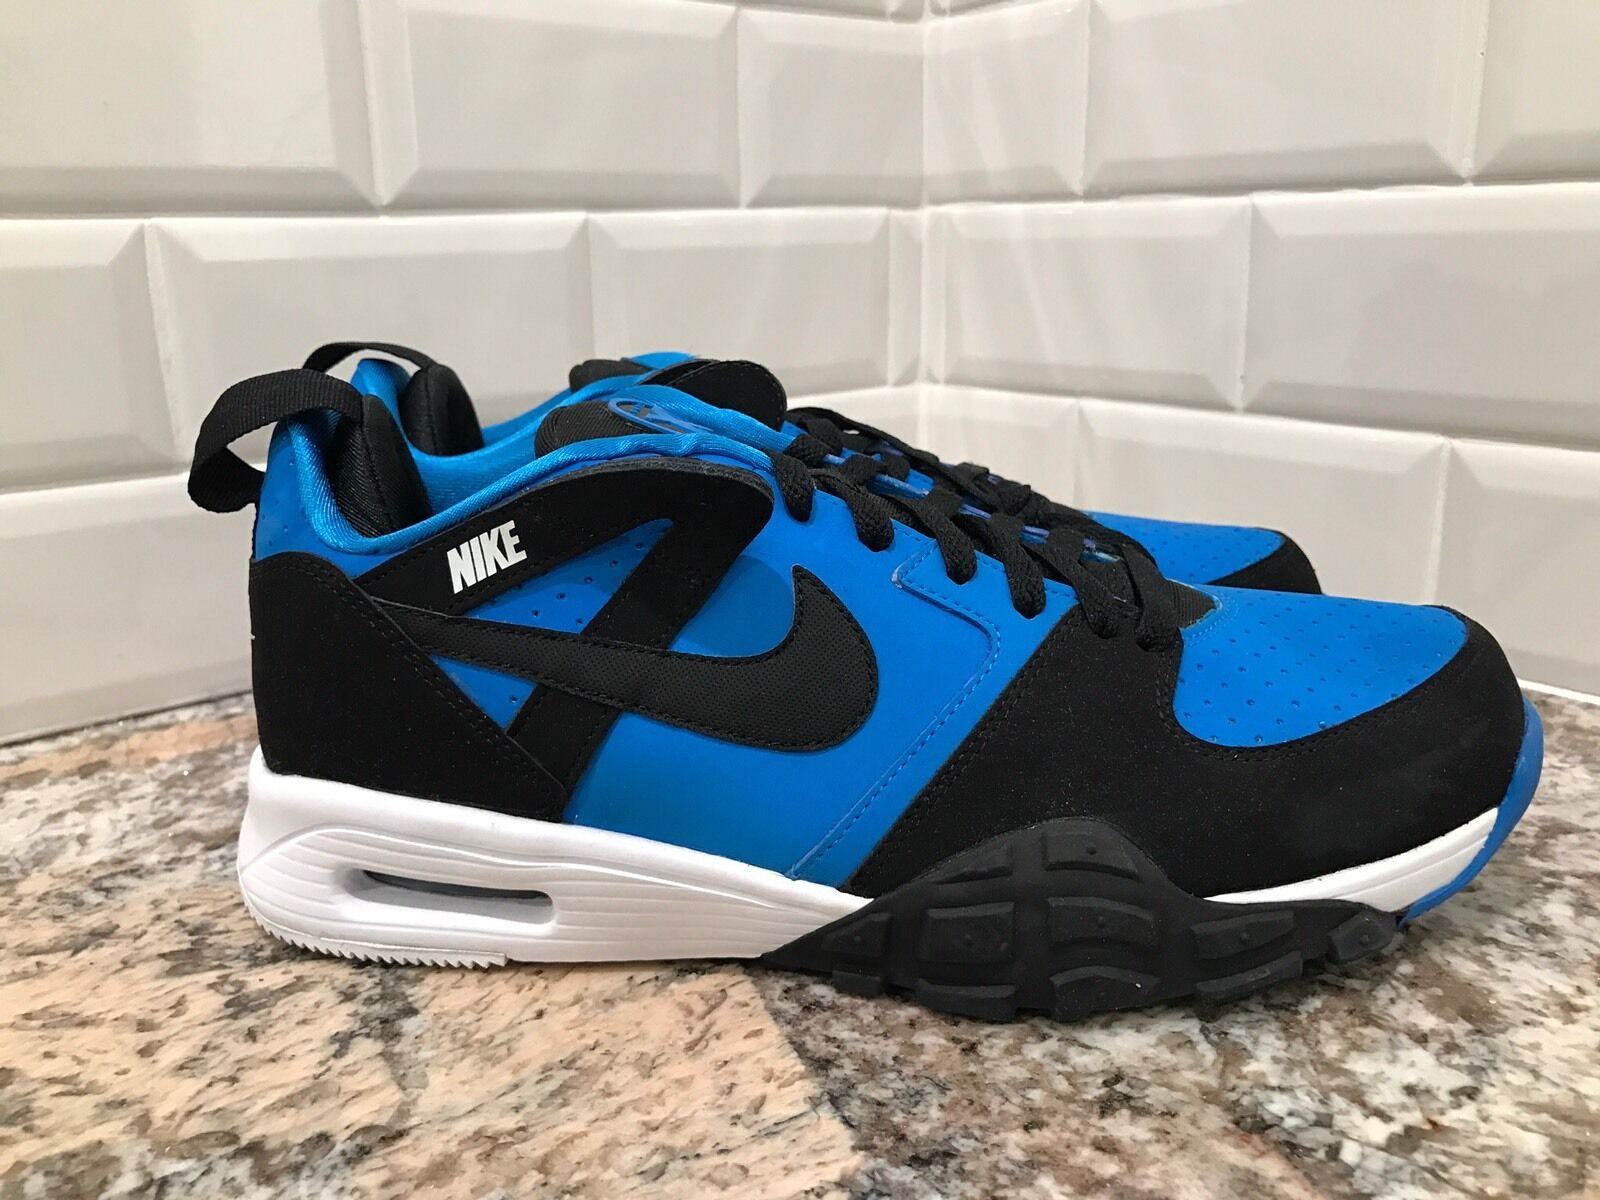 2018 Nike Air Trainer 91 Lite SAMPLE Blue Black White Training Price reduction Special limited time